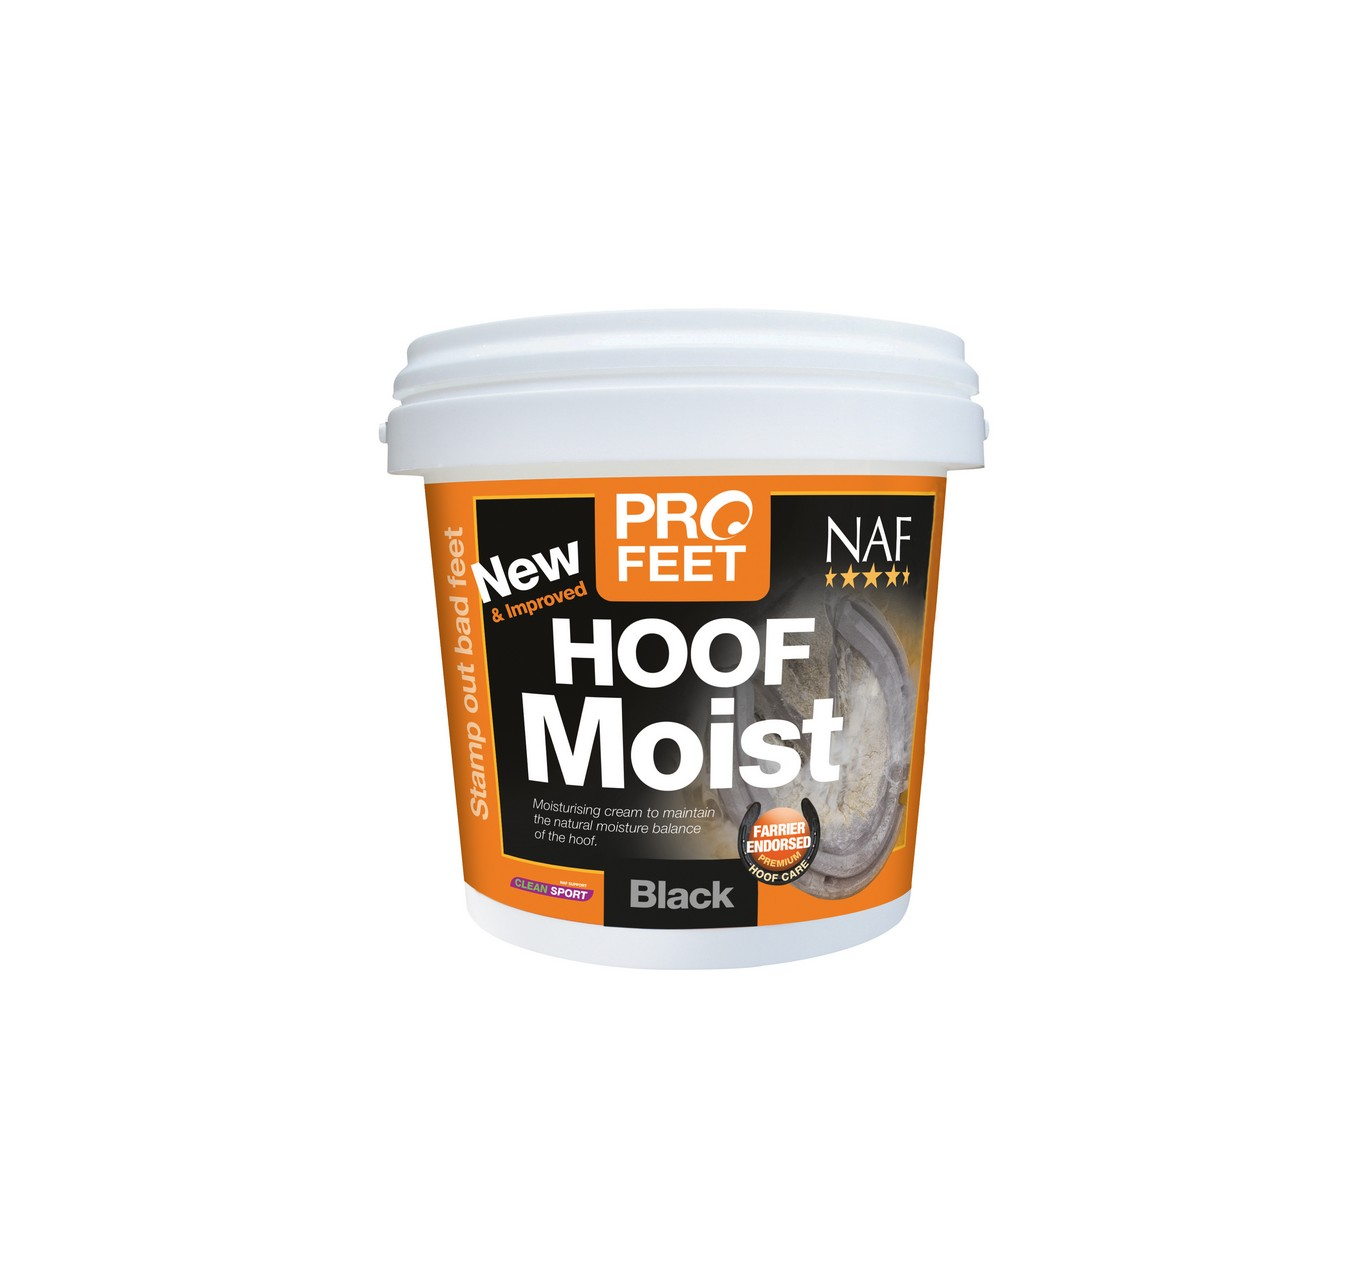 Pro Feet Hoof Moist Black 900g